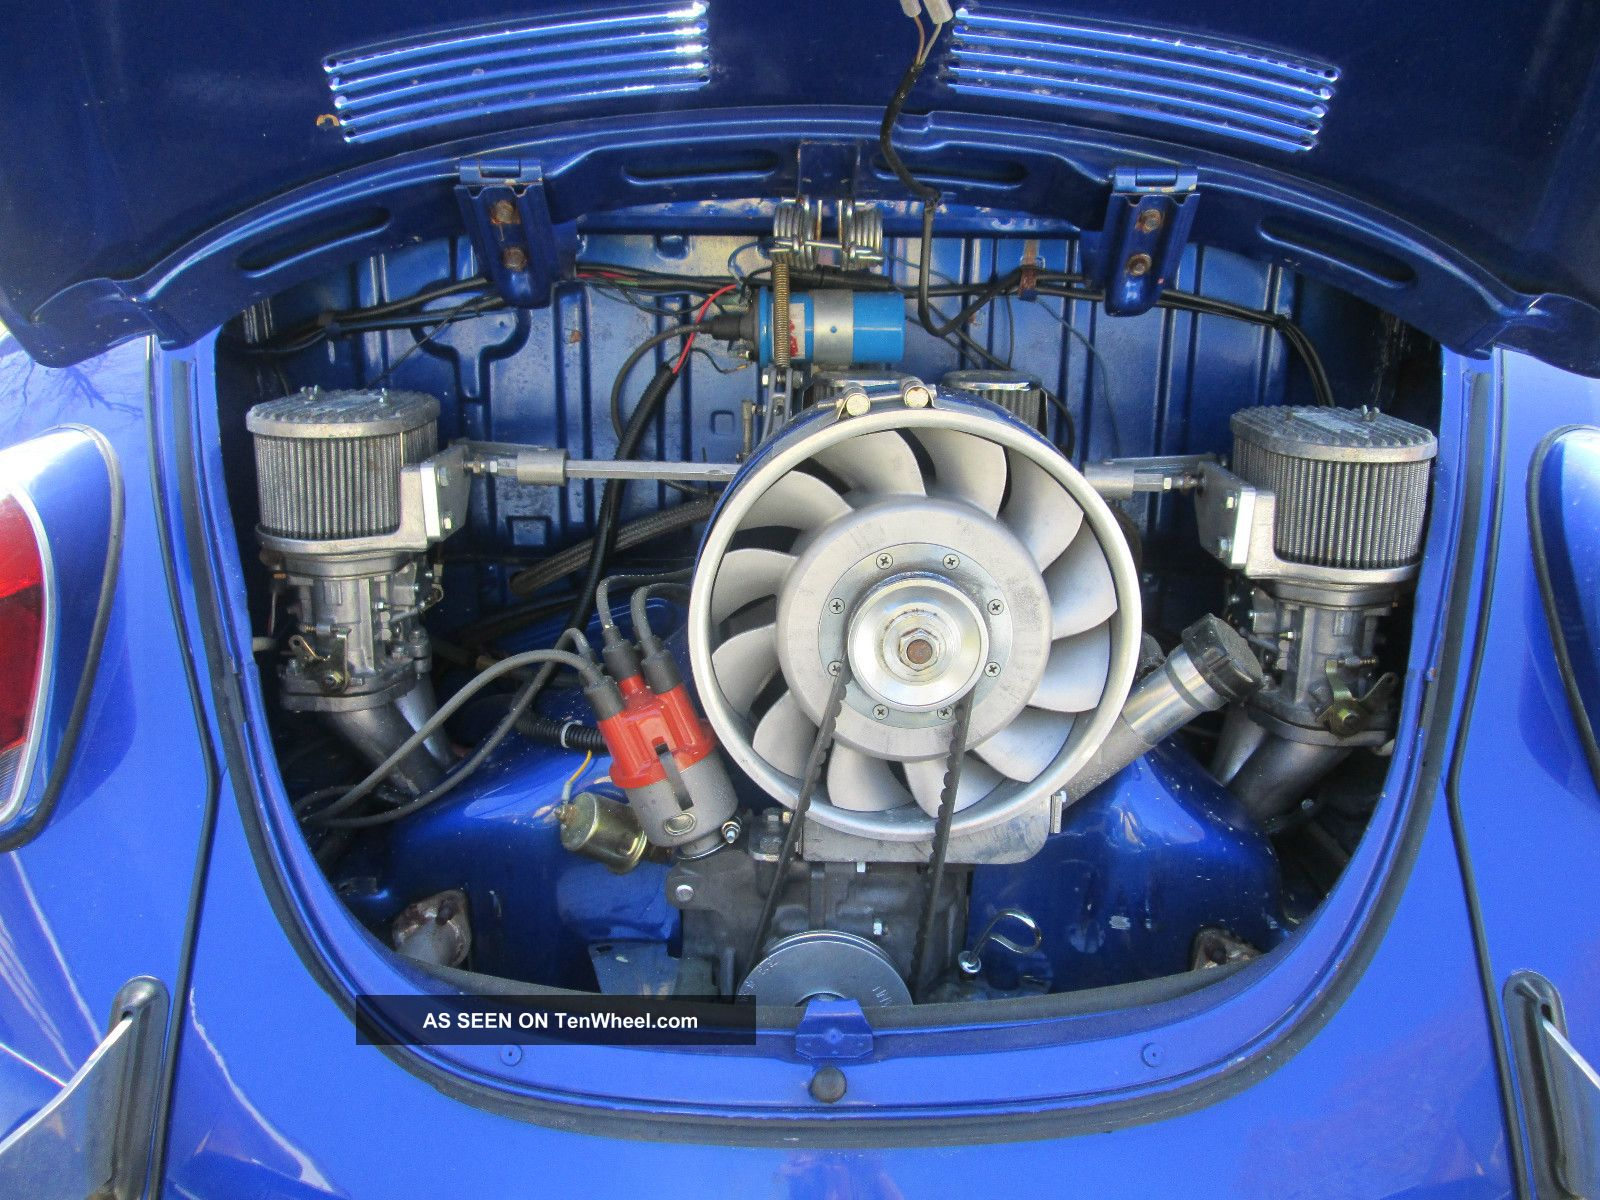 Ford Fe Engine in addition Camaro Rally Sport Automatic Ci Lgw further Px Ford Mustang Mach Windsor Engine likewise Lrmp O Ford Thunderbird Rear View additionally Large. on 1971 ford thunderbird 429 specs